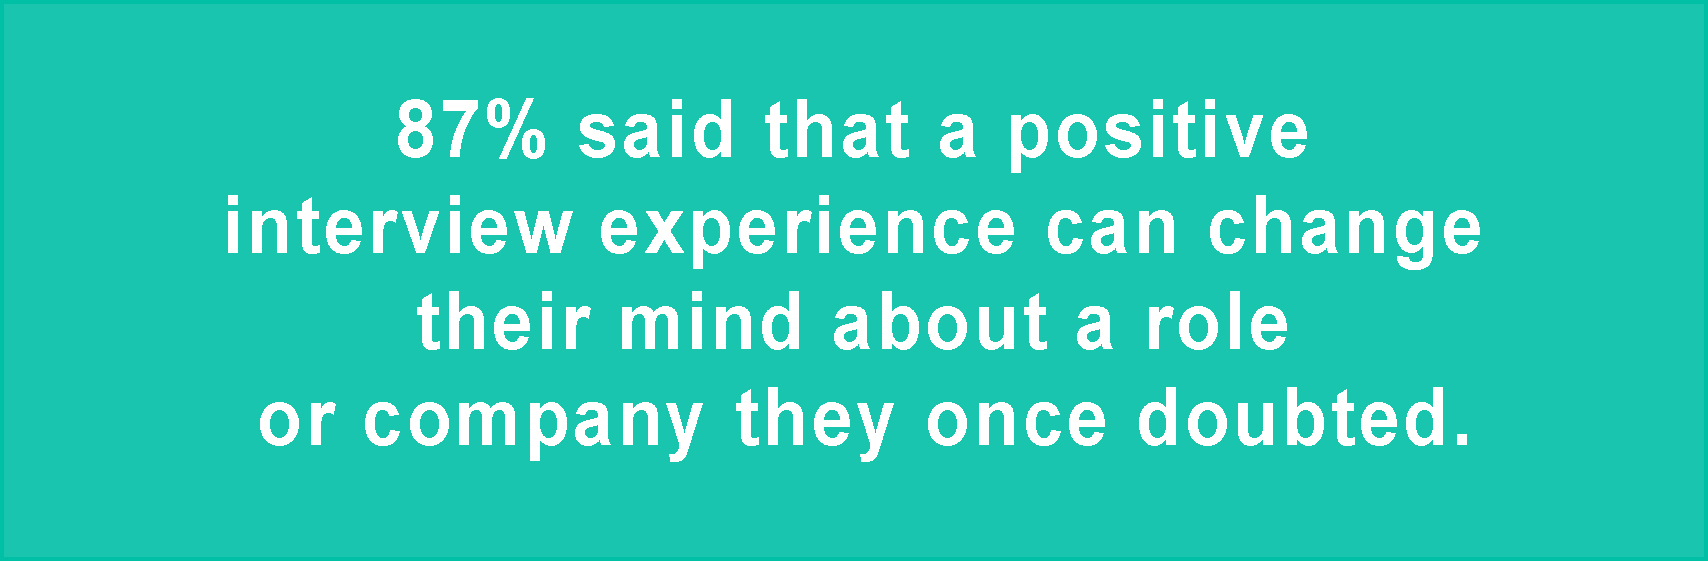 positive-interview-experience-can-change-candidate-mind